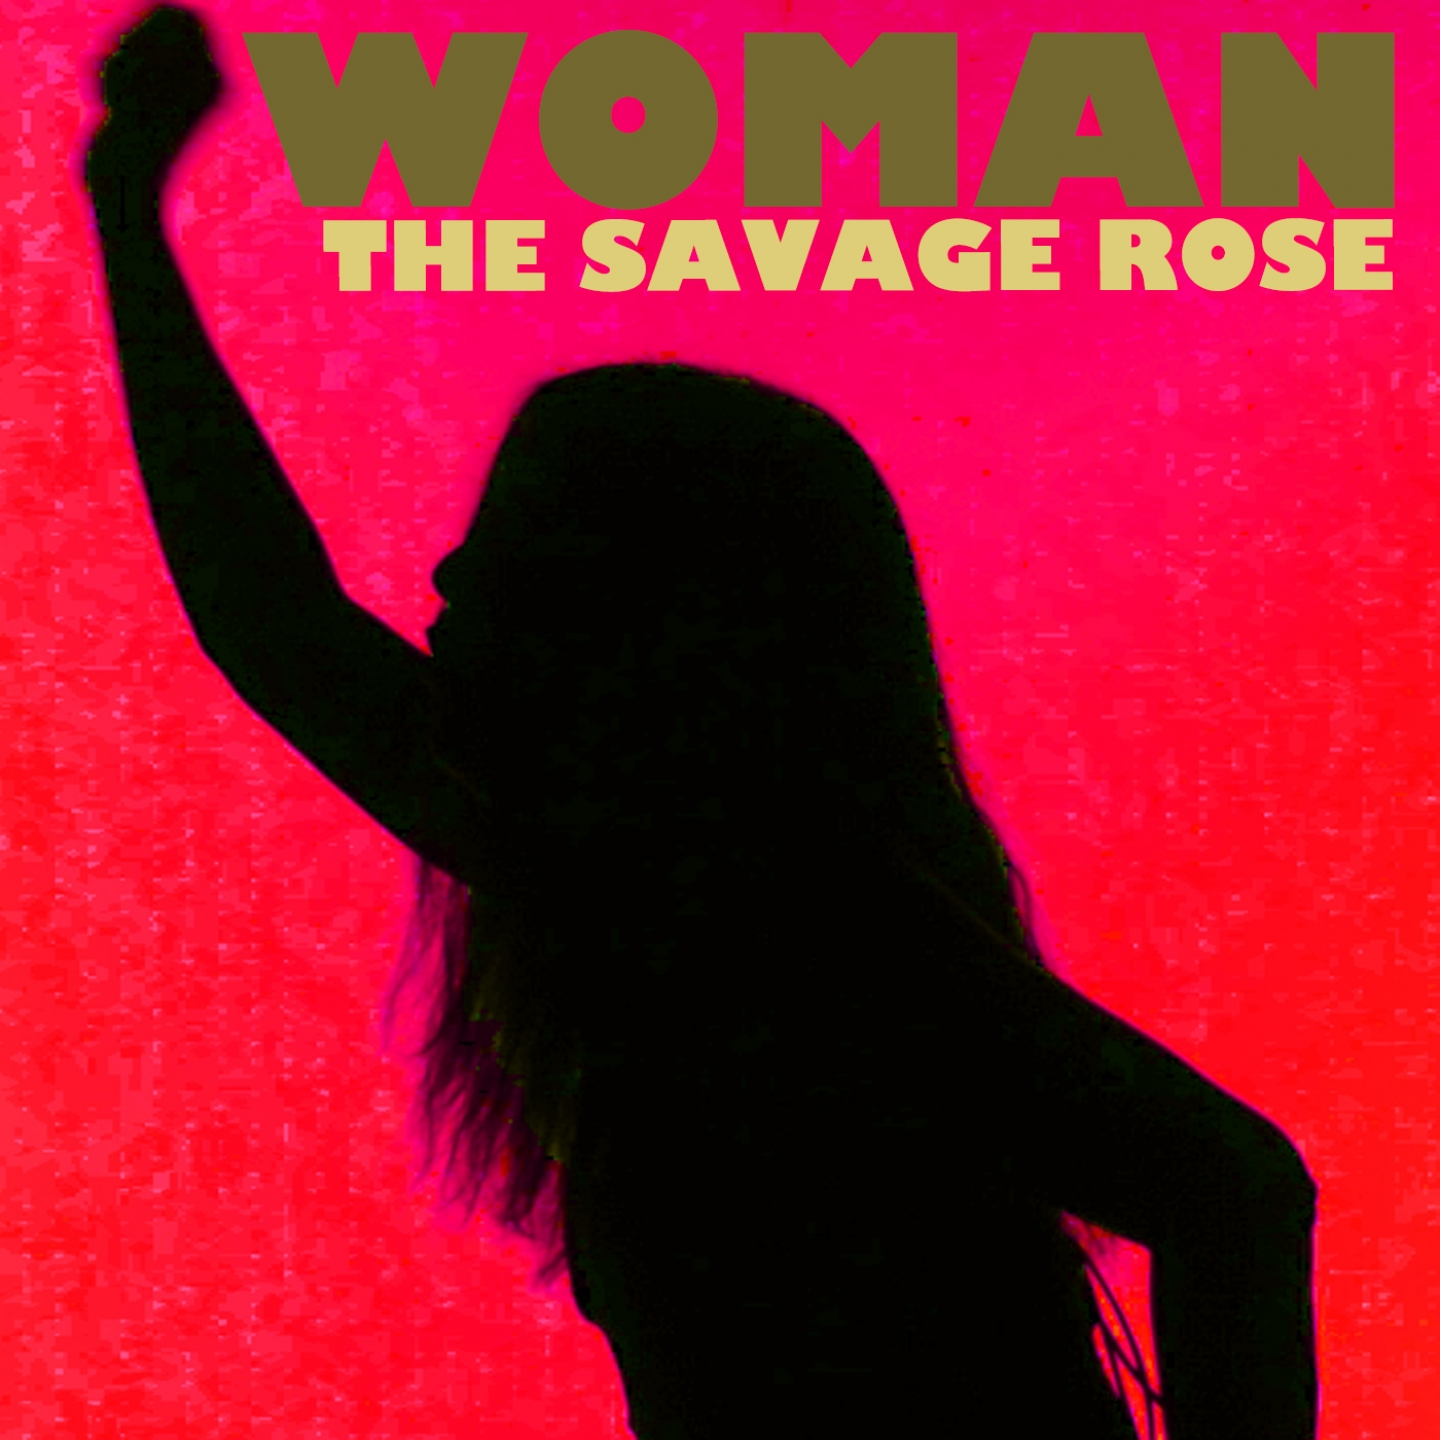 The Savage Rose – 'Woman' (Single)